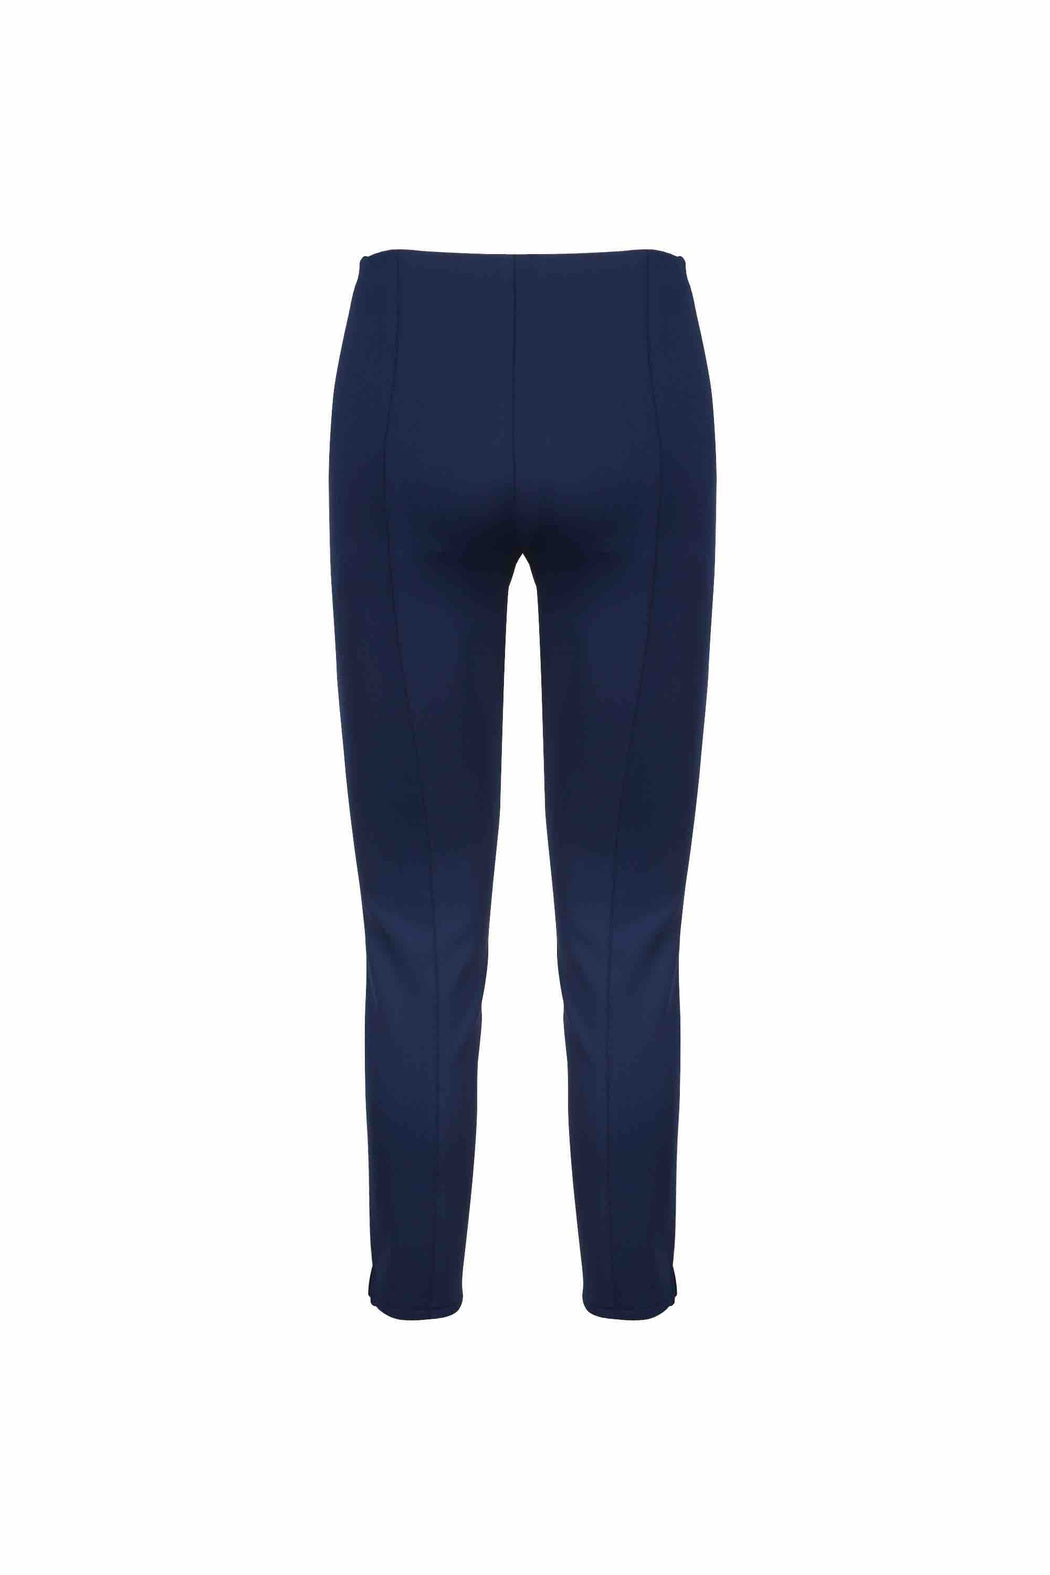 Back view of Women Super Stretchy Leggings in Navy